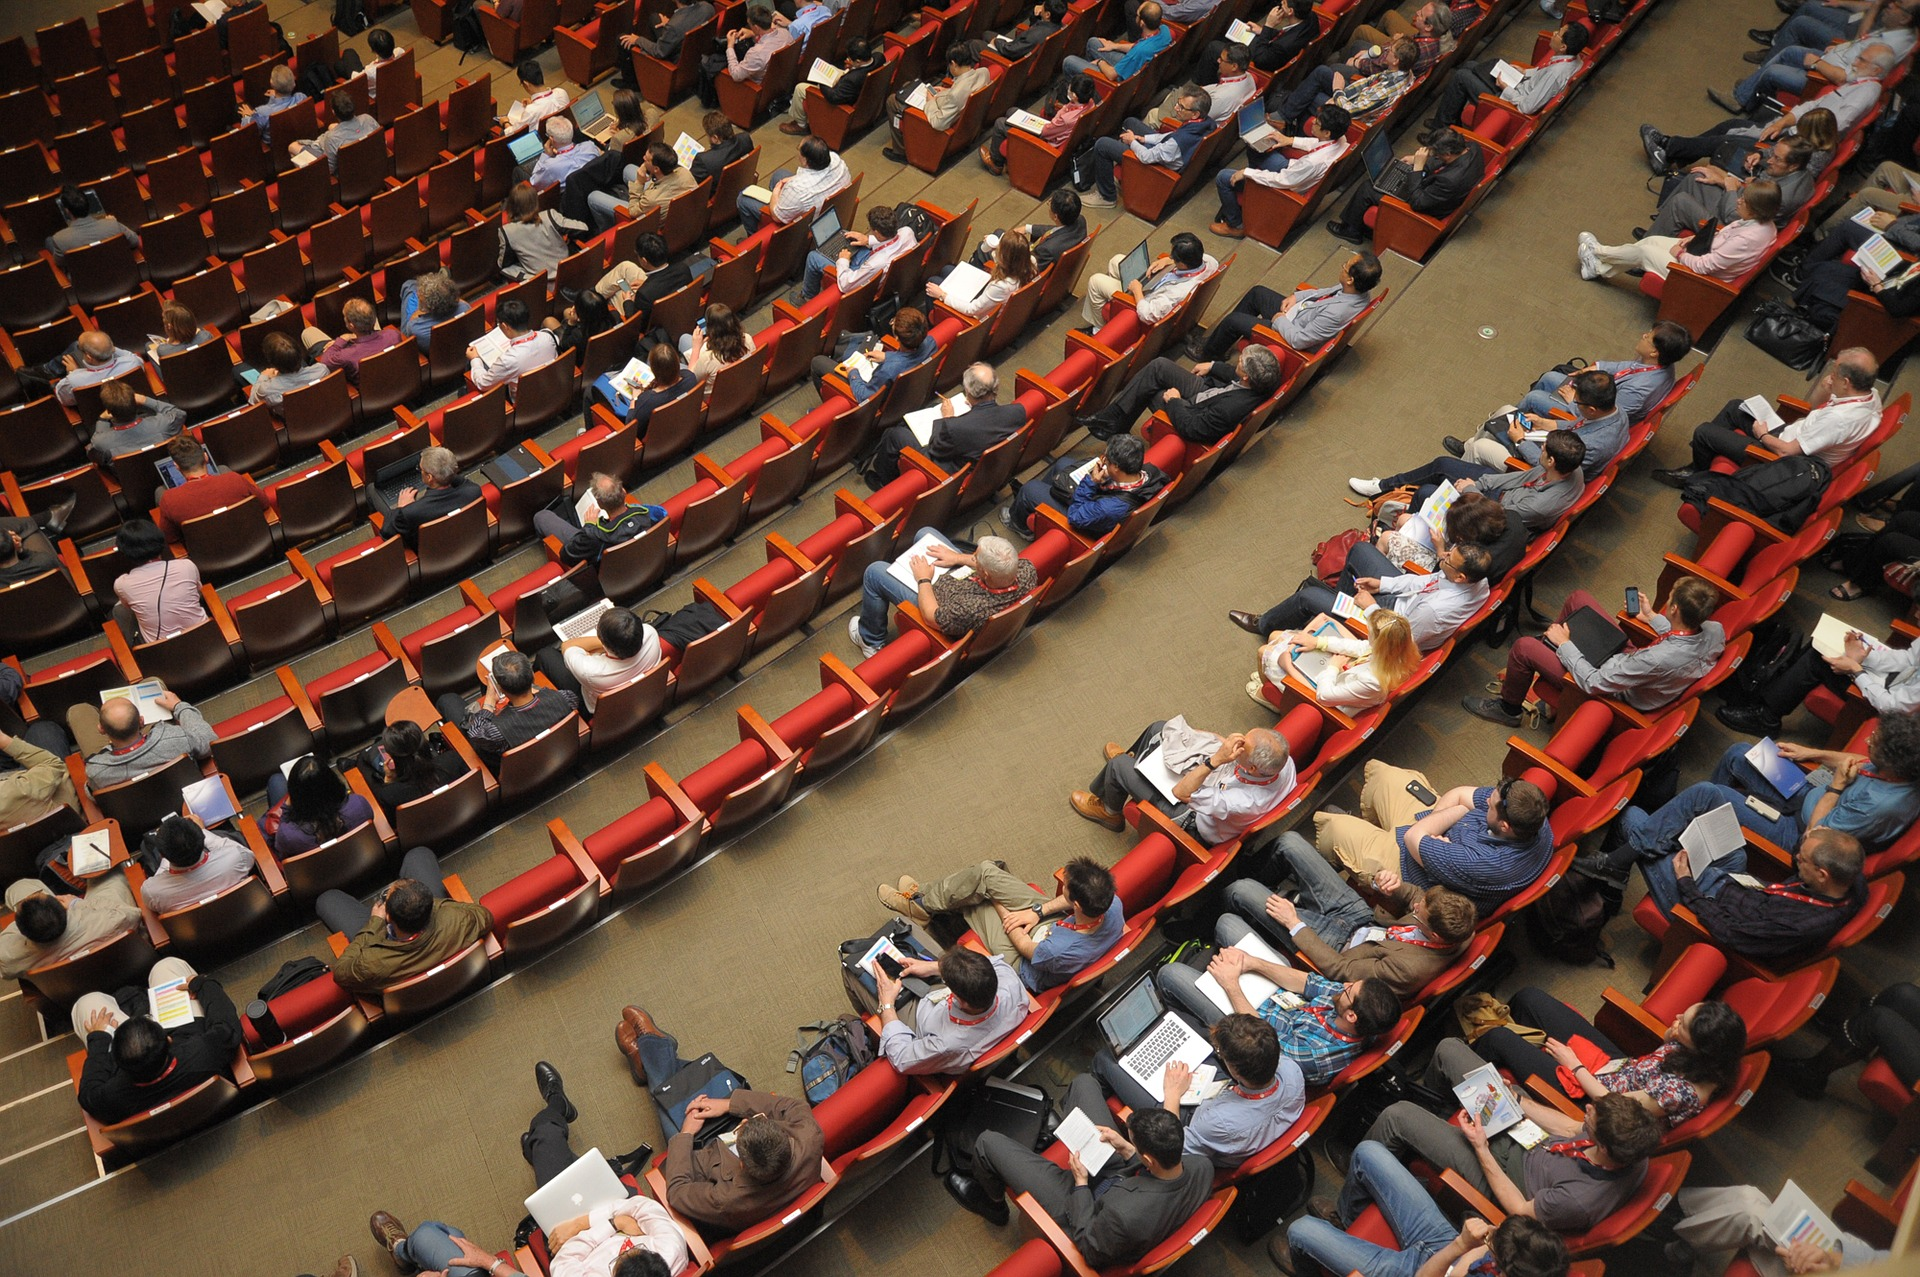 people taking notes in large lecture hall